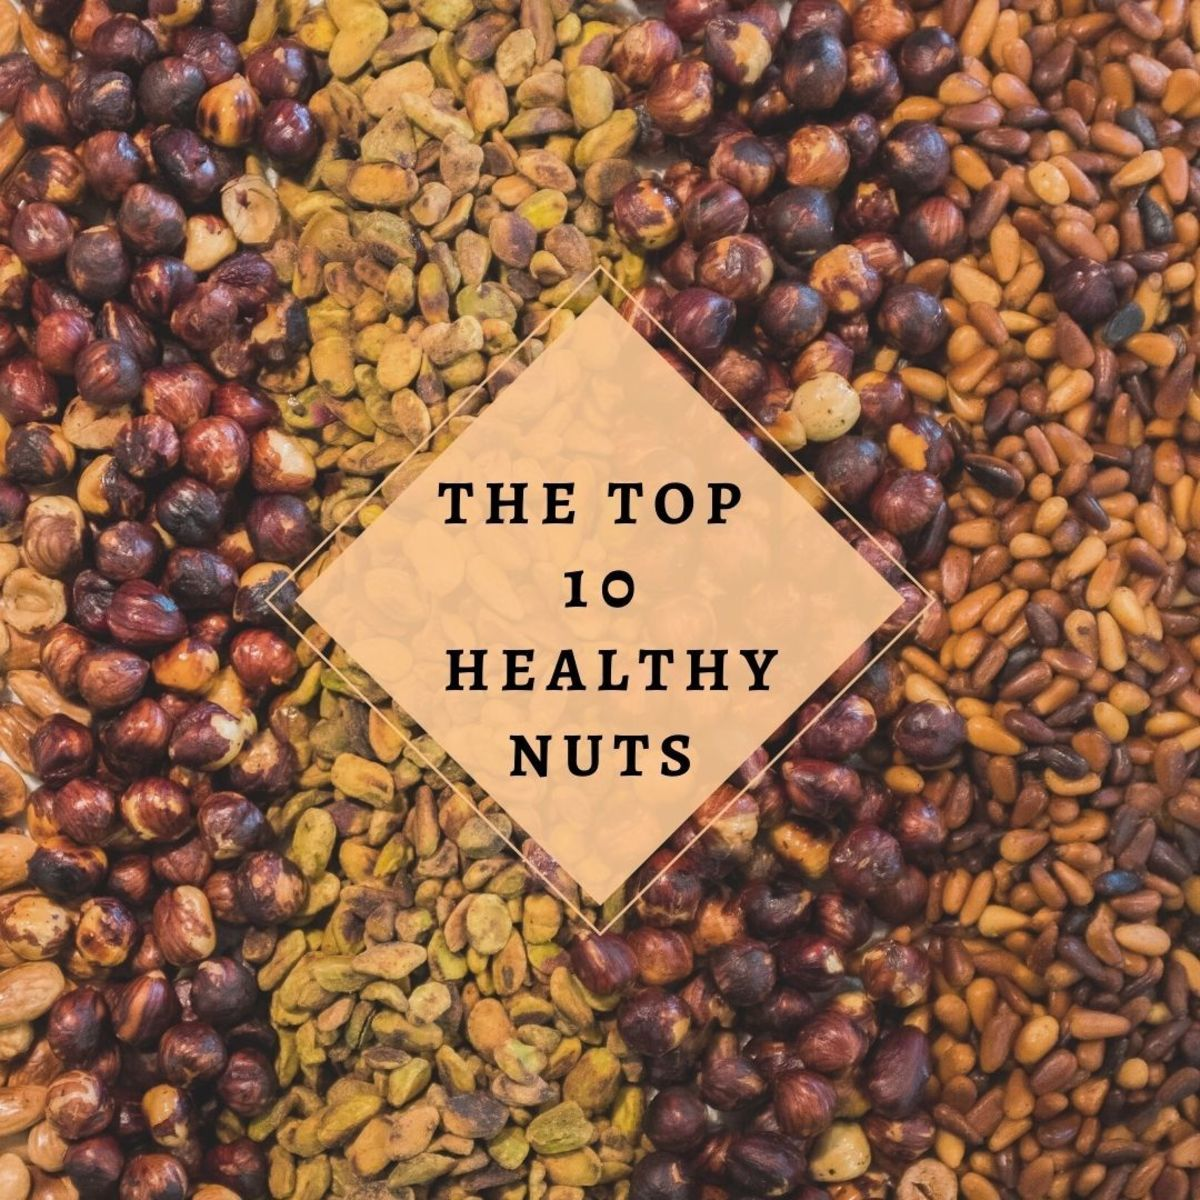 Top 10 Healthiest Nuts